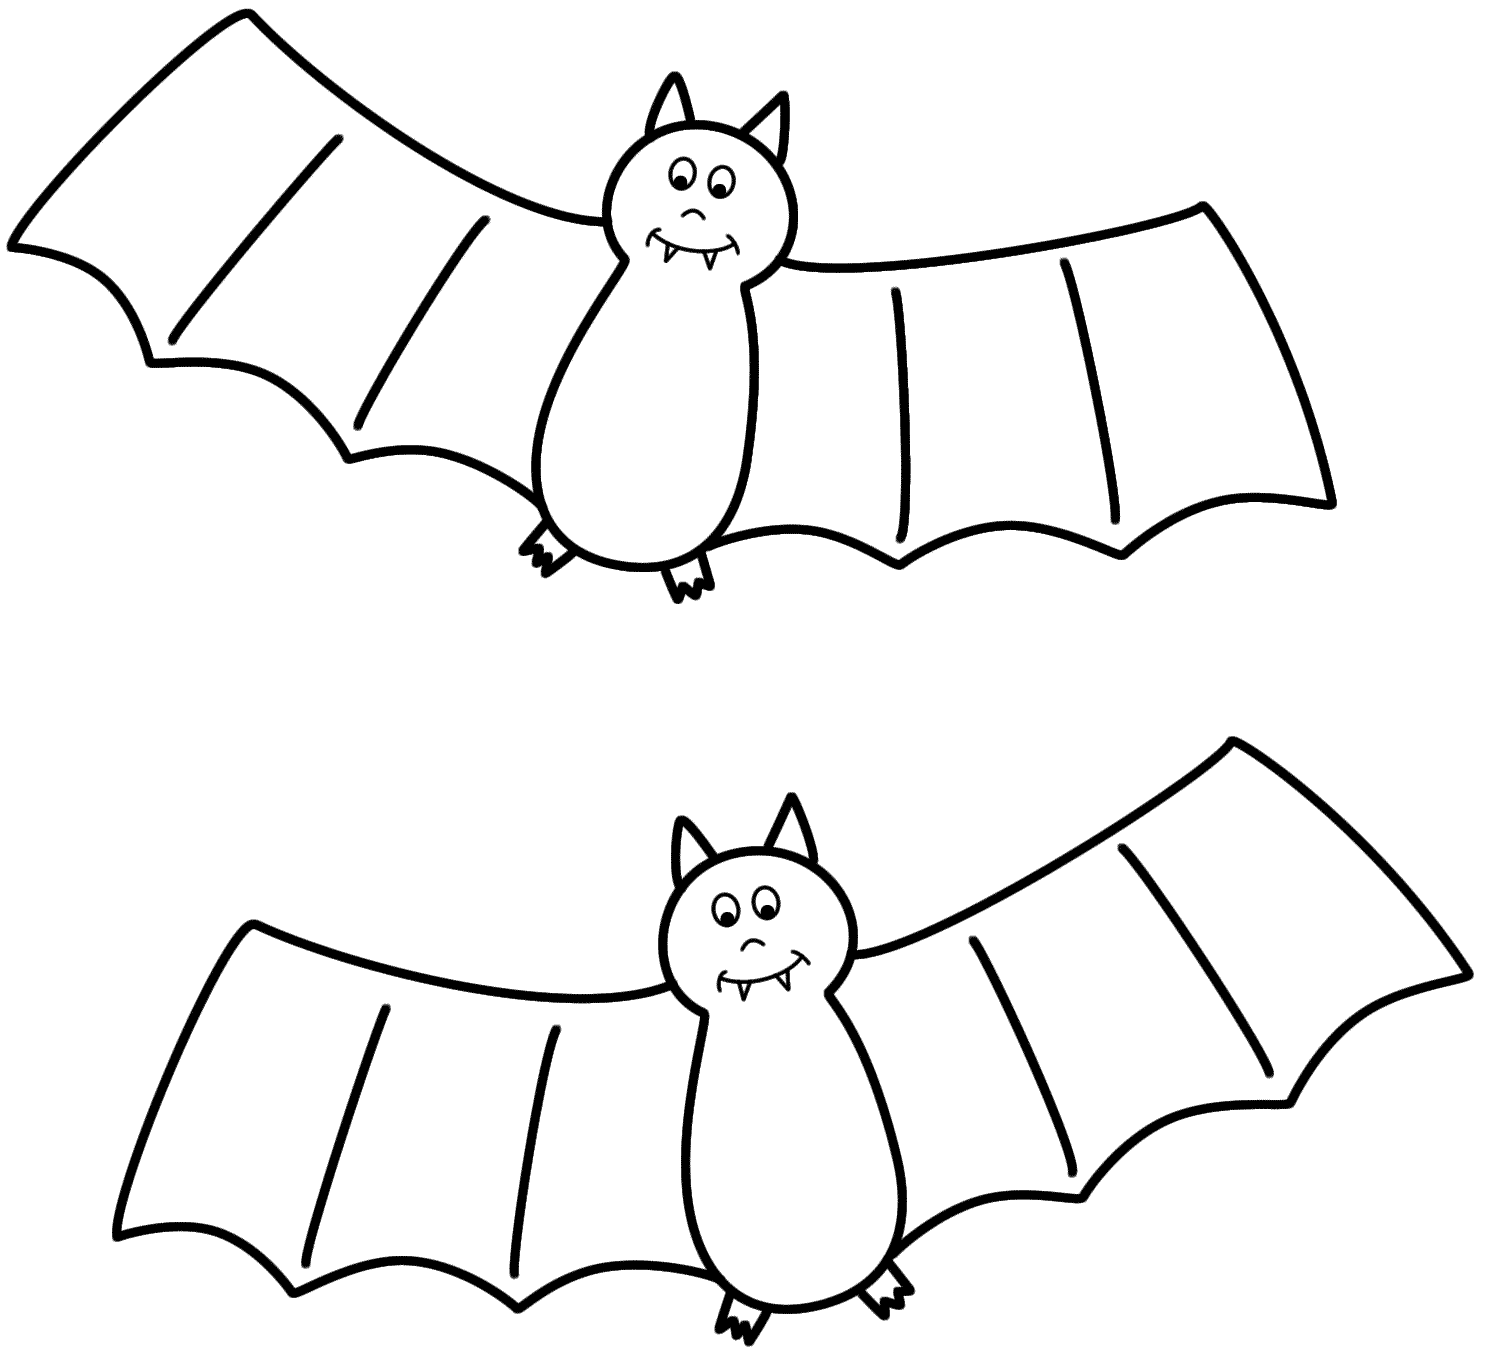 Bat coloring pages to download and print for free